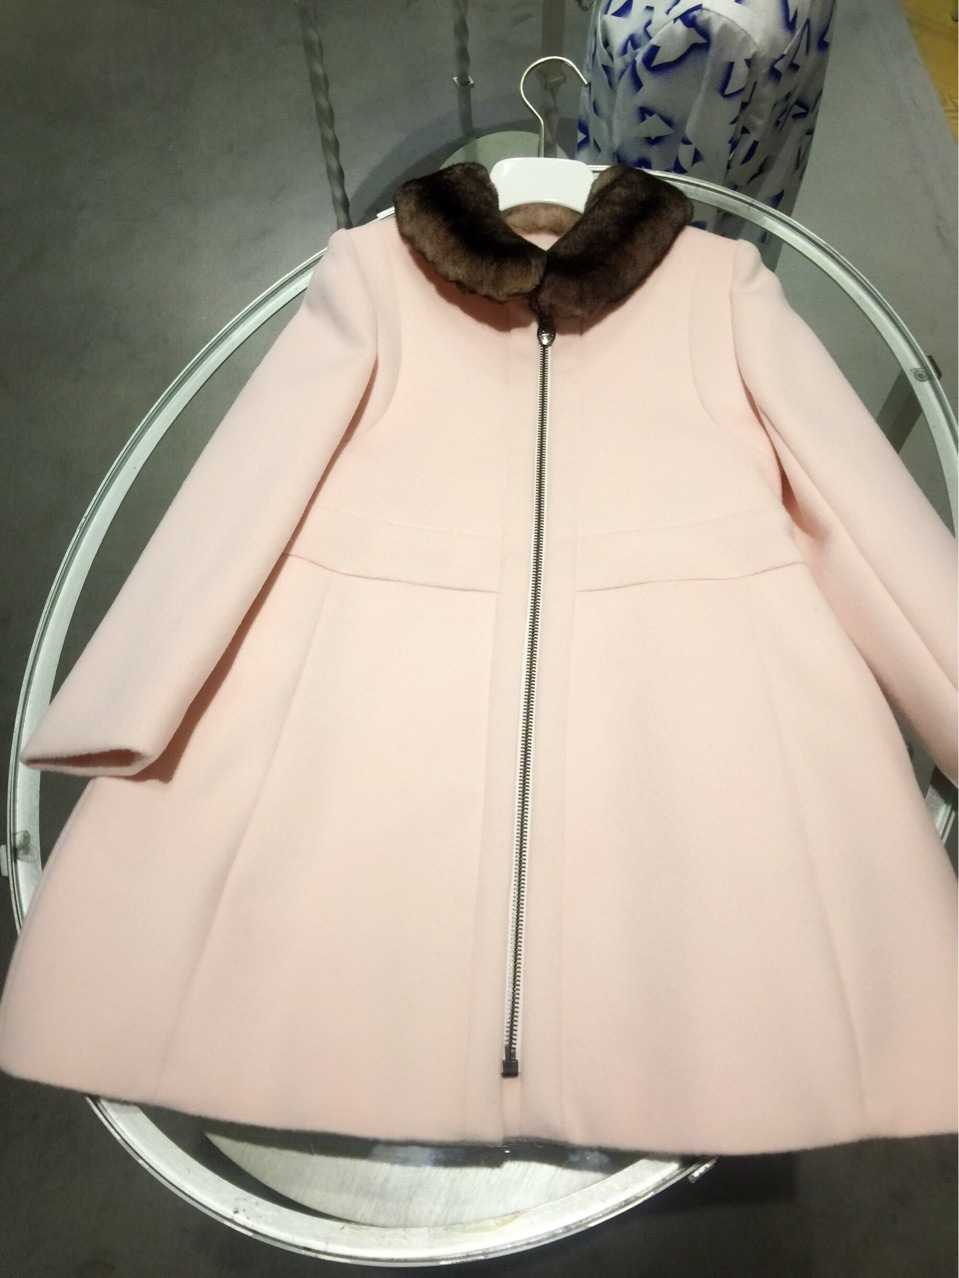 2017 Baby Girls Coat Winter Autumn Fur Turn-Down Collar Long Sleeve Cotton Woolen Children's Jacket Girls Outwear lucky panda 2016 woman winter cotton thickened slim slim down in the long coat coat of students lkb186